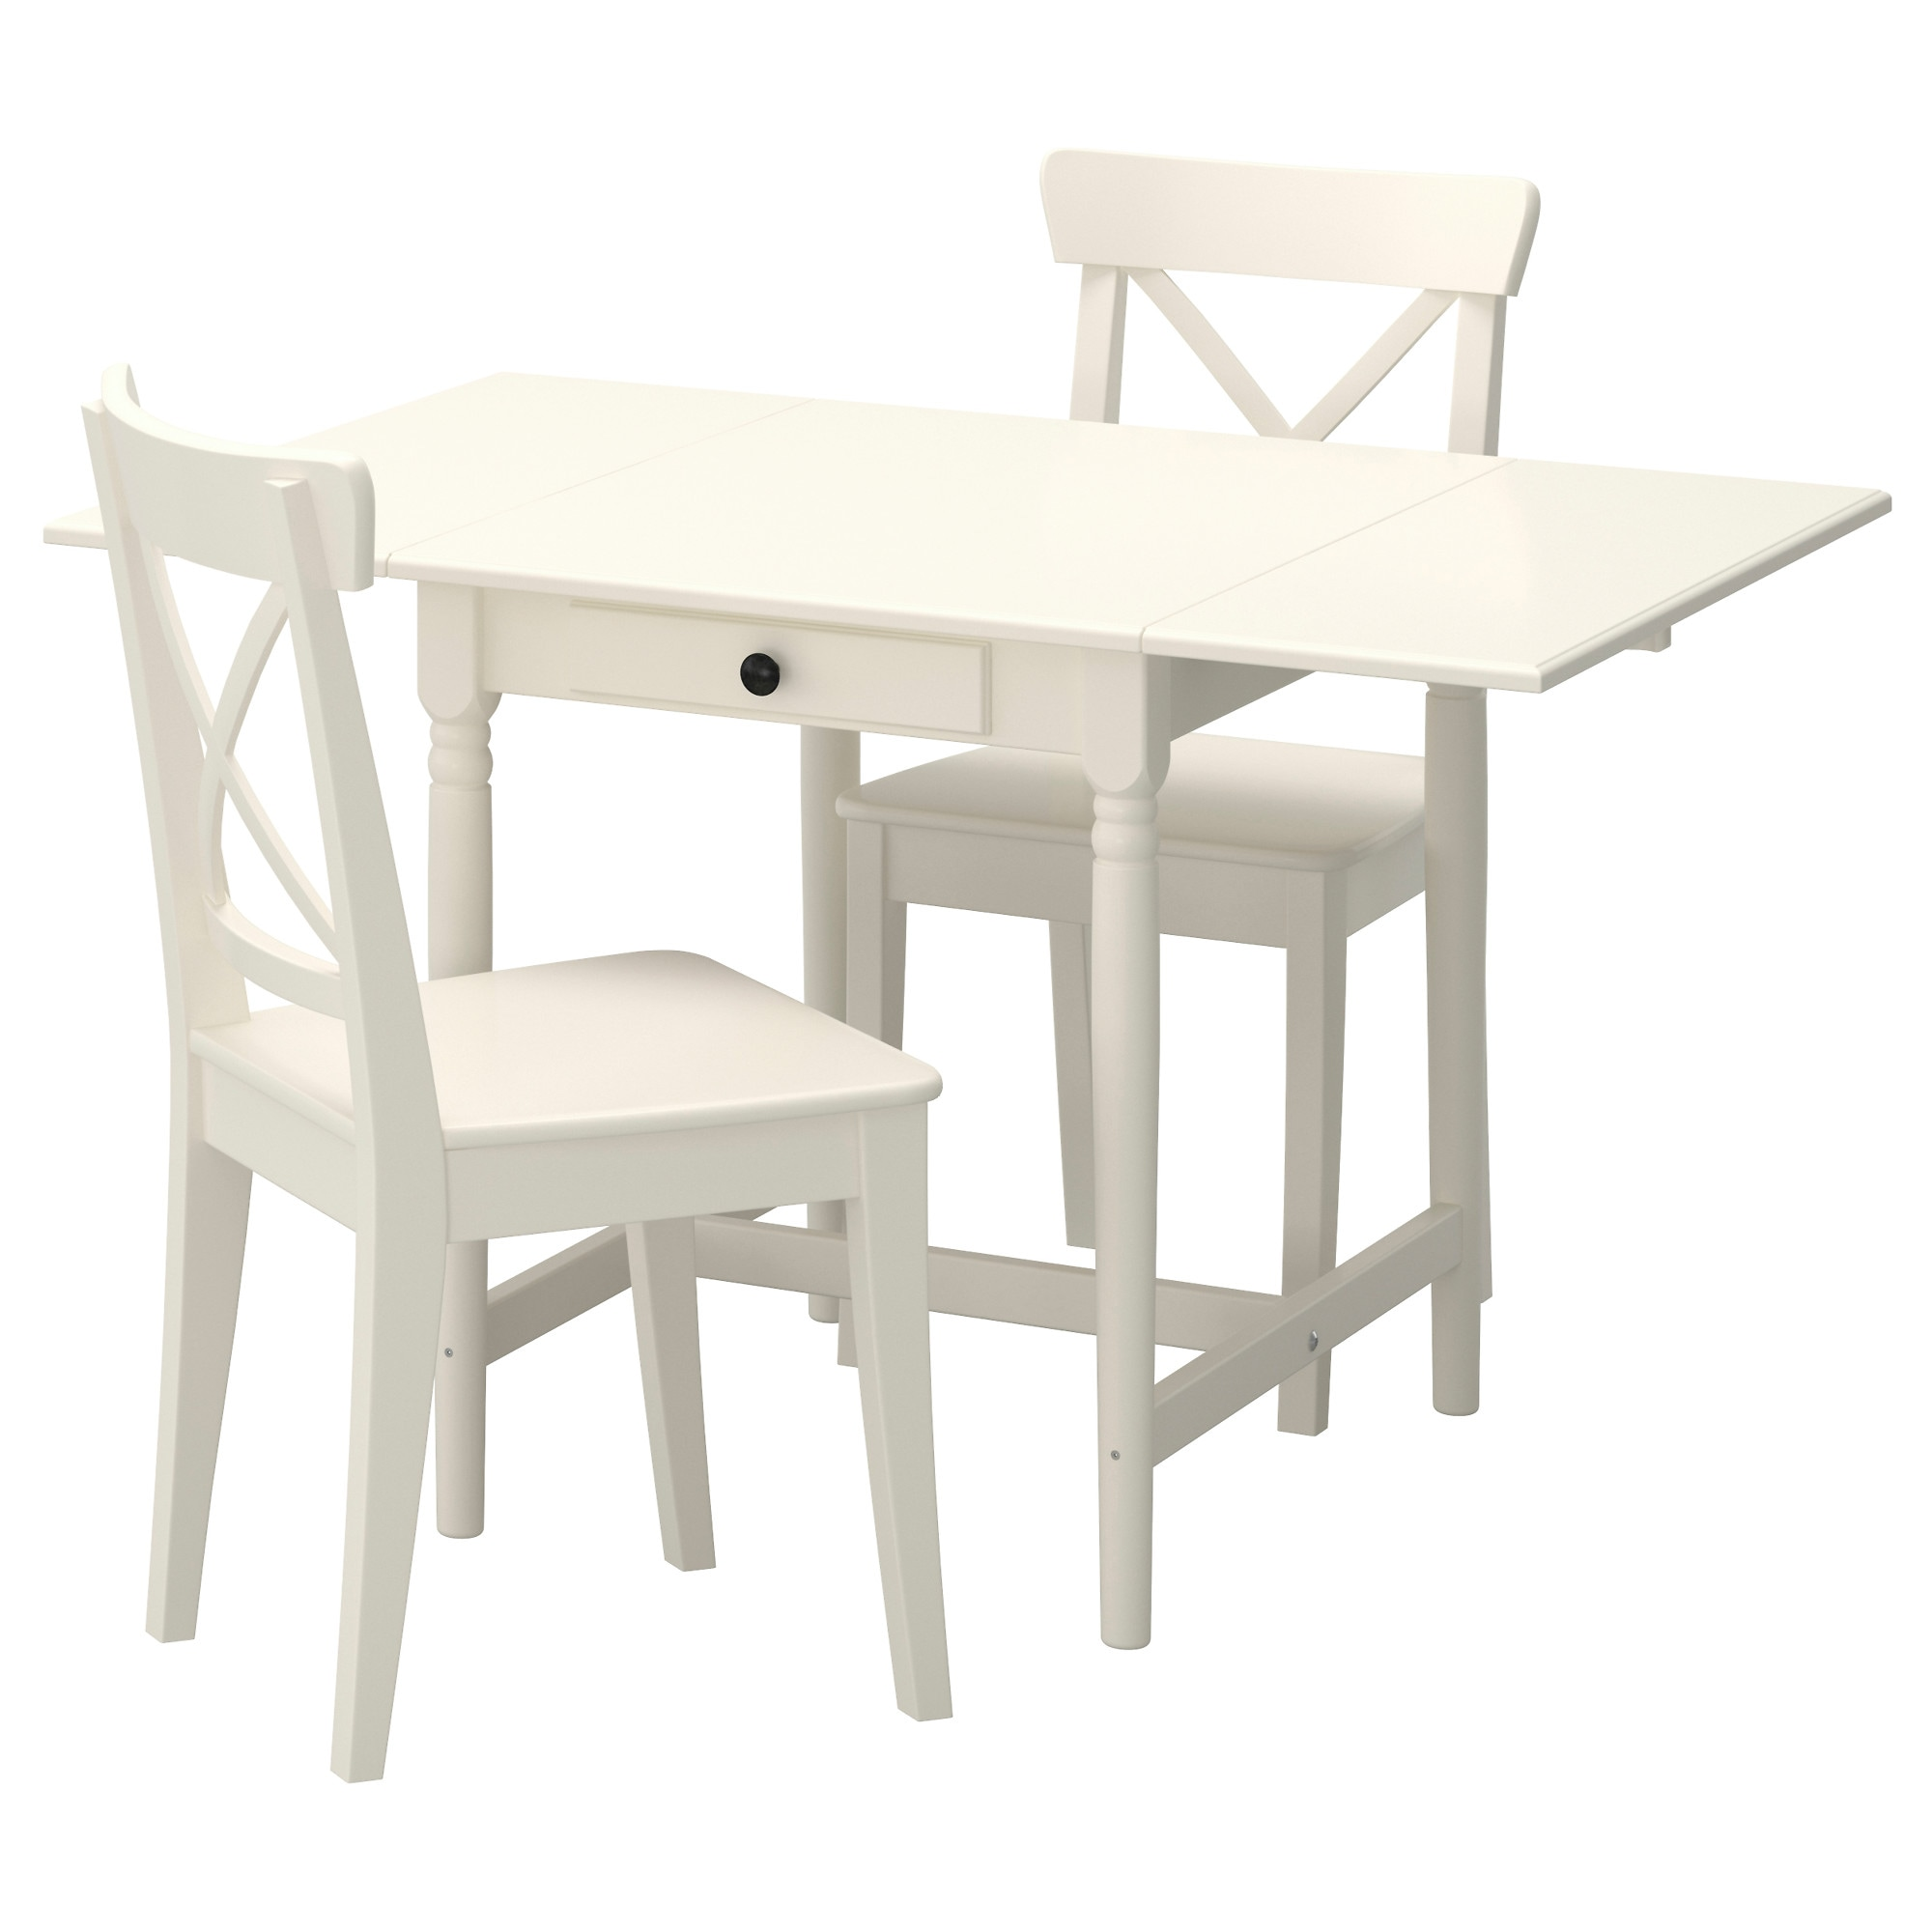 Dining Room Chairs Ikea New in House Designer bedroom